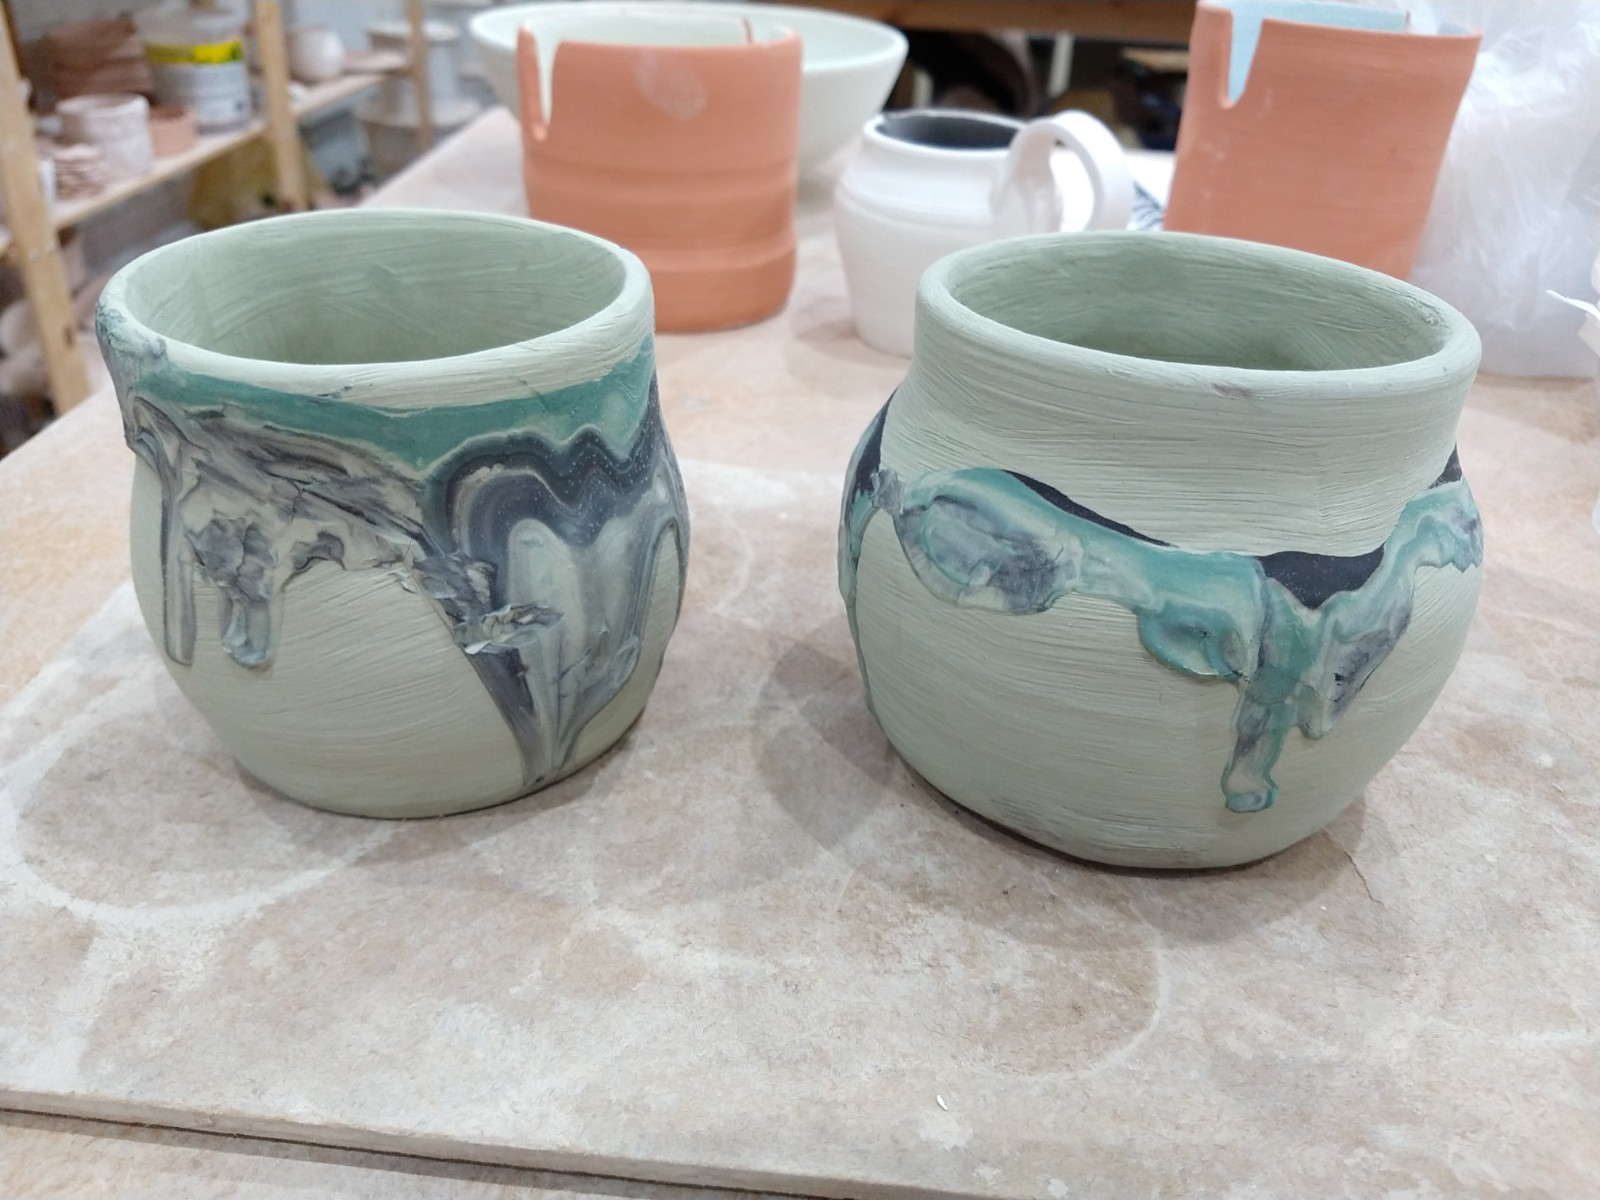 Mixed slip poured on pot